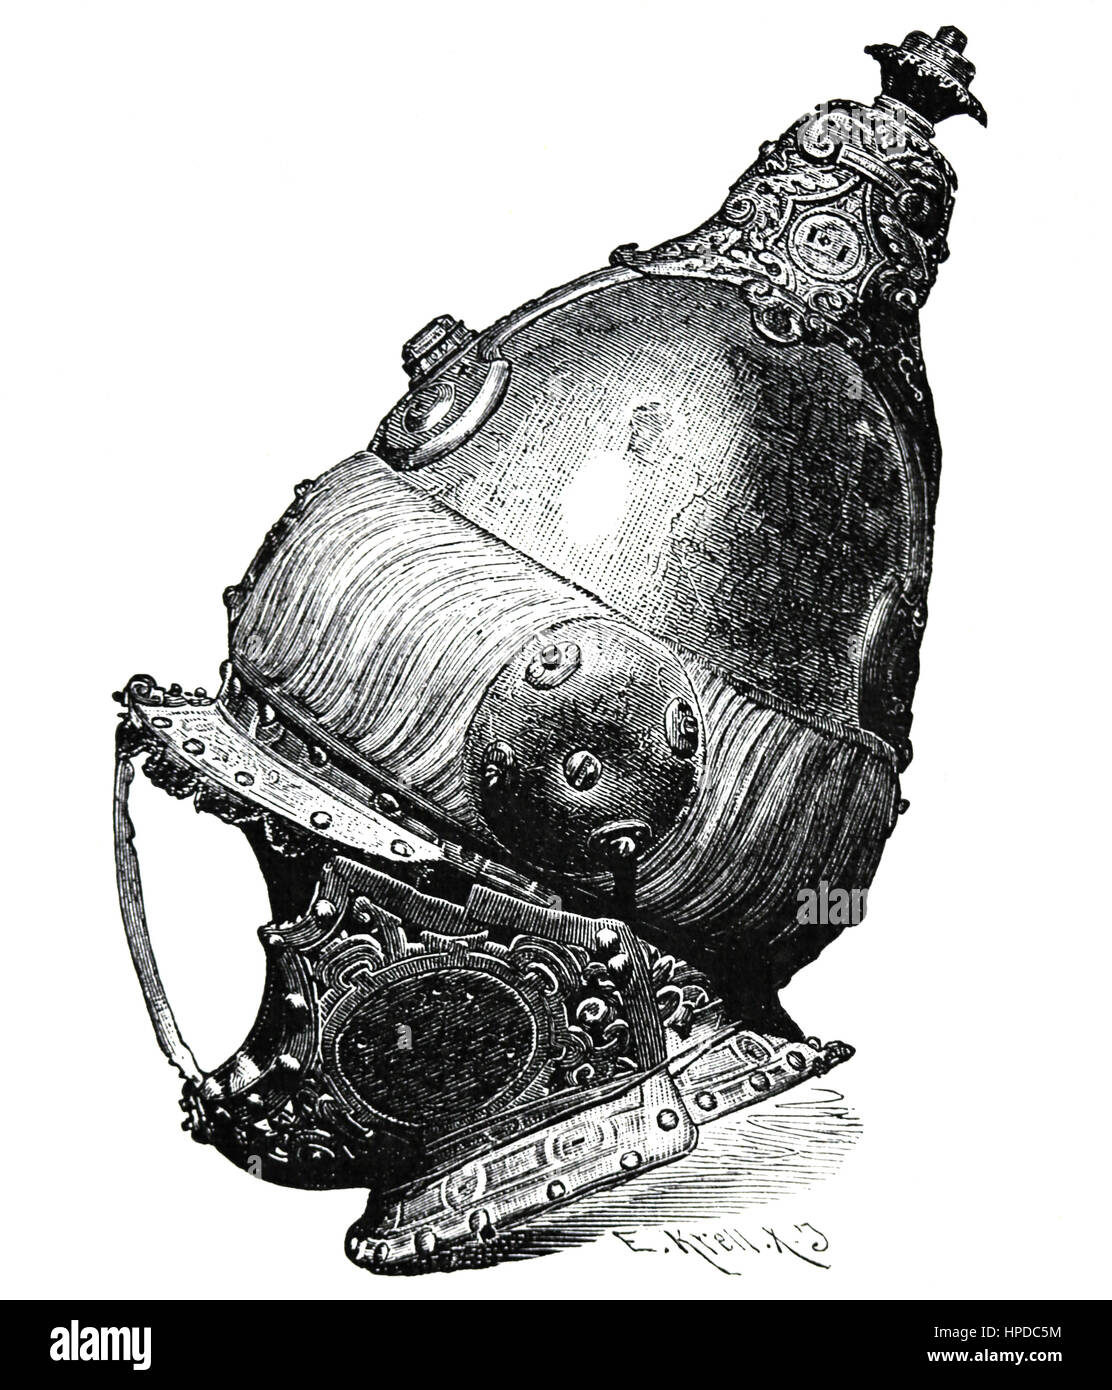 Armet, Turkish helmet from the Battle of Lepanto, 1571. Engraving. - Stock Image